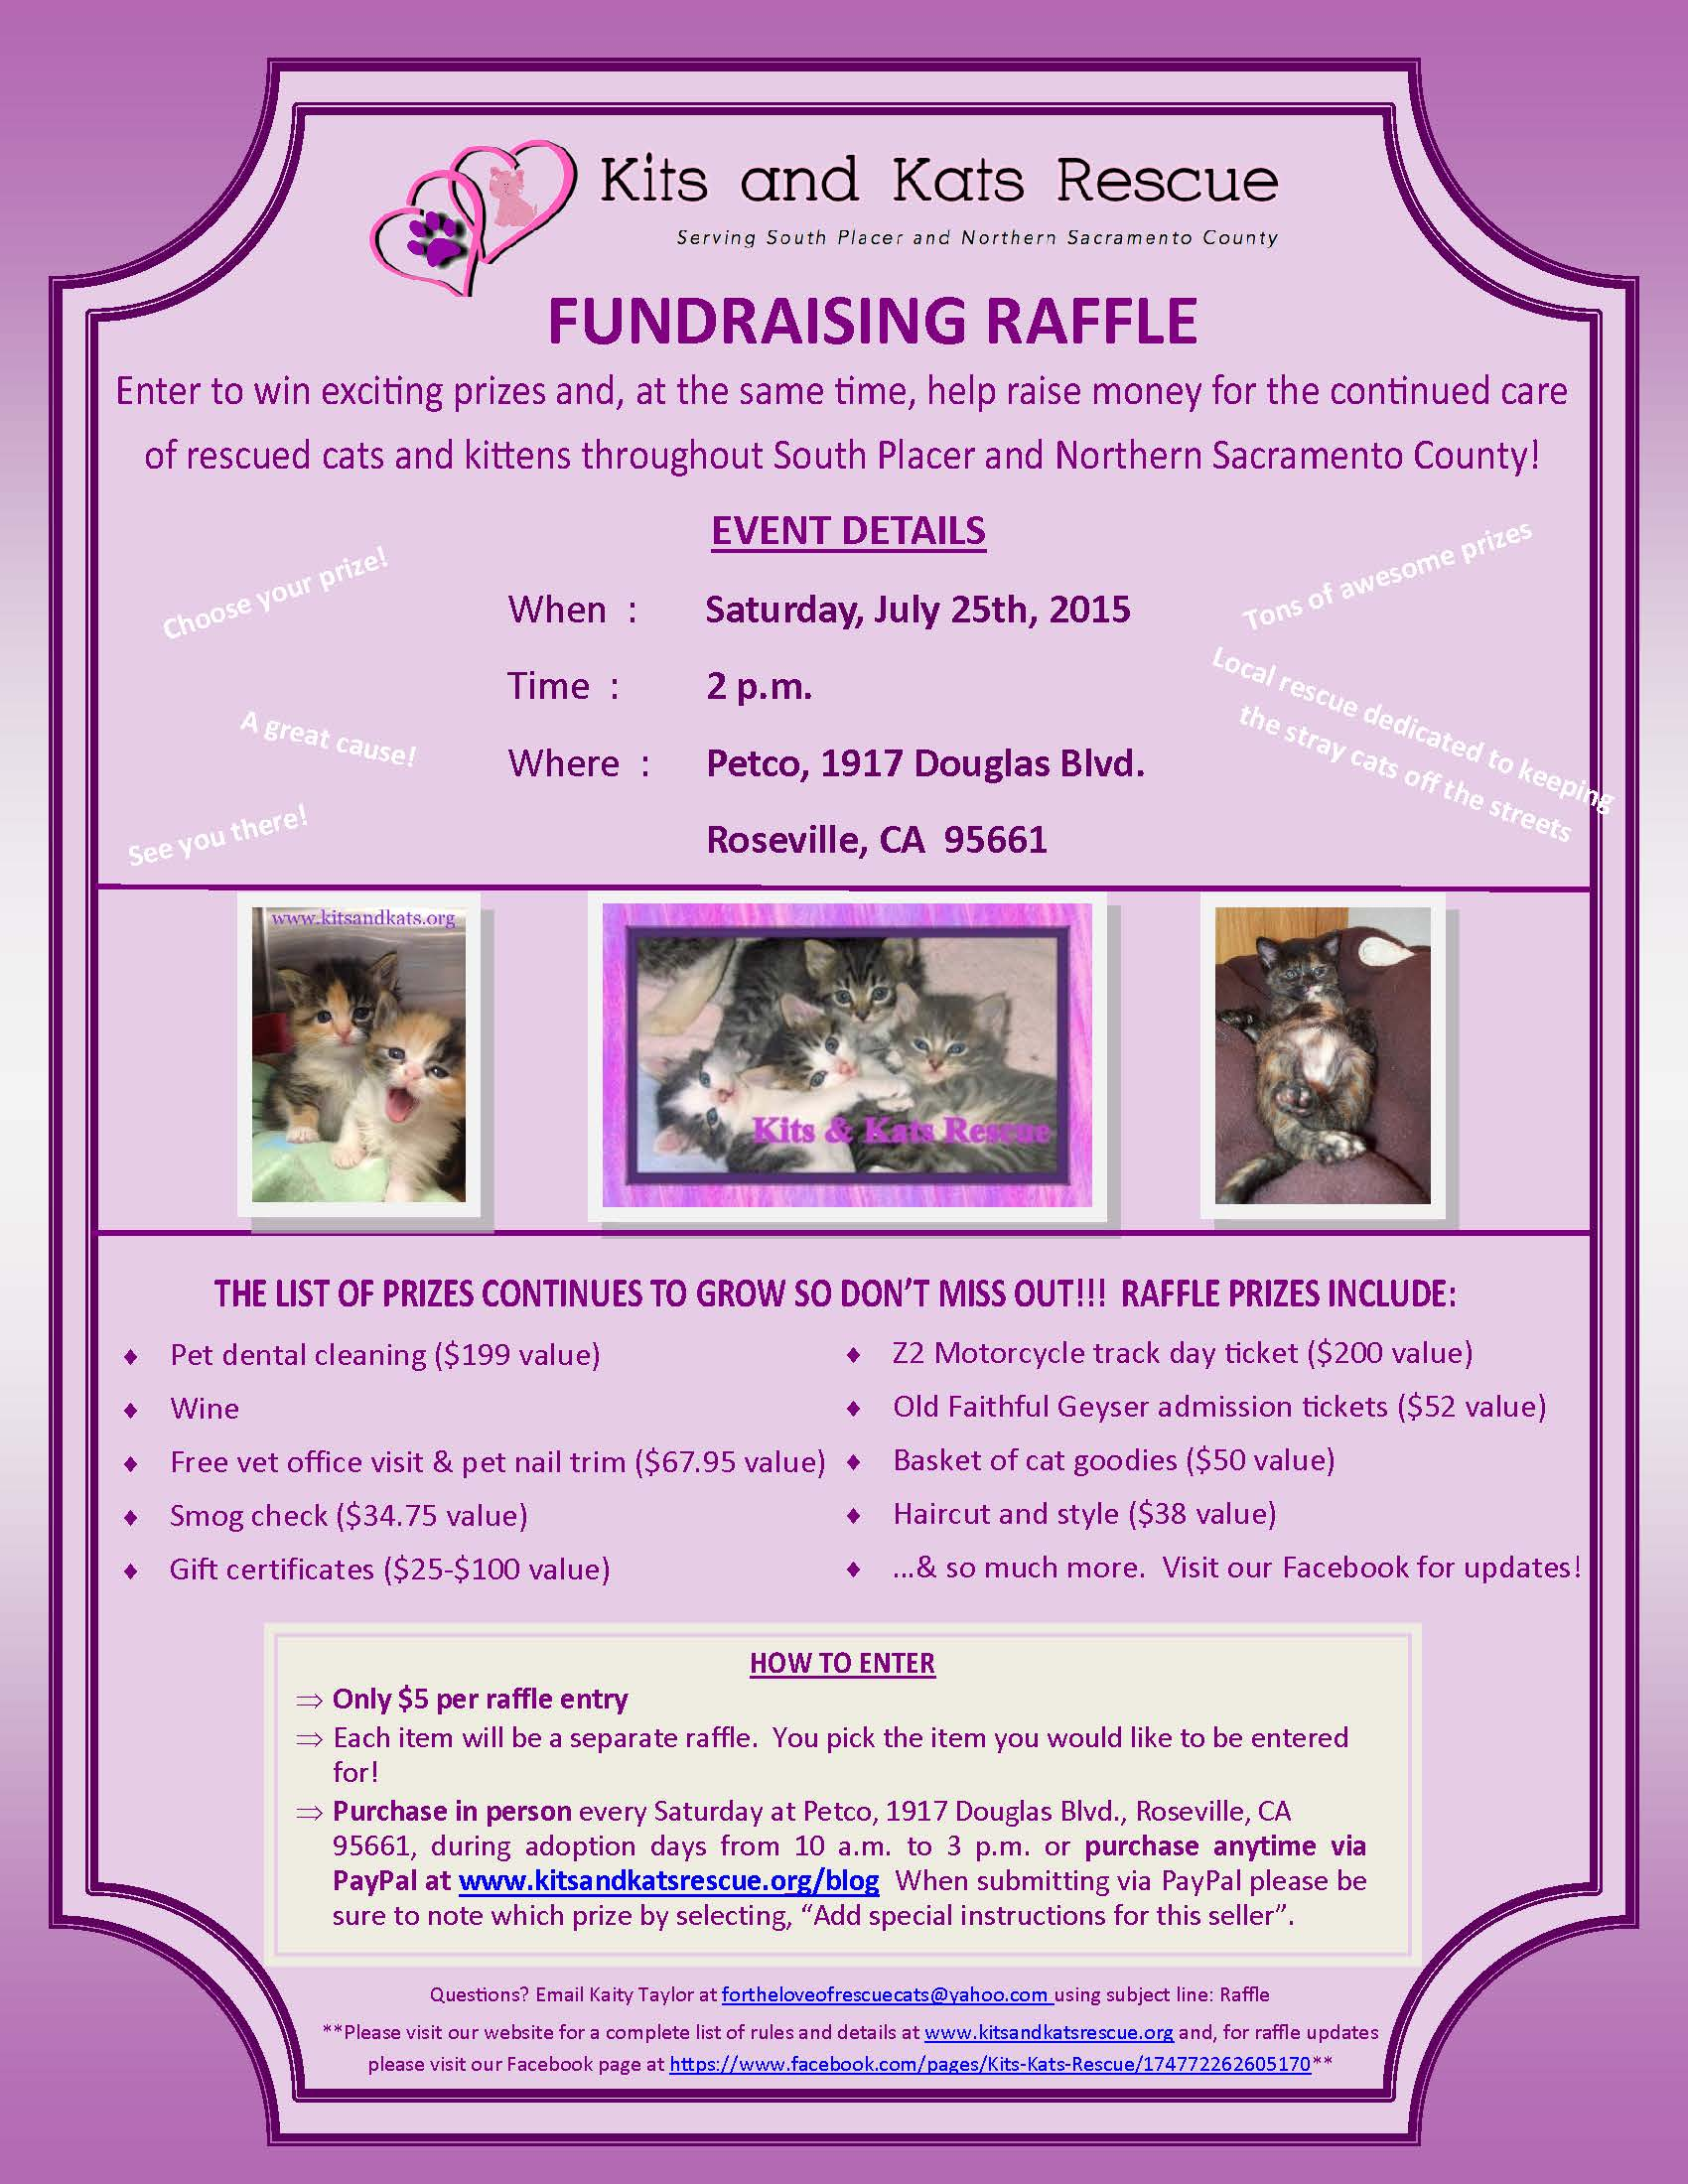 the fundraiser raffle is on hurry and buy your tickets before we are holding our first annual fundraiser raffle please join us and help us make this a huge success every dollar raised goes to help the homeless